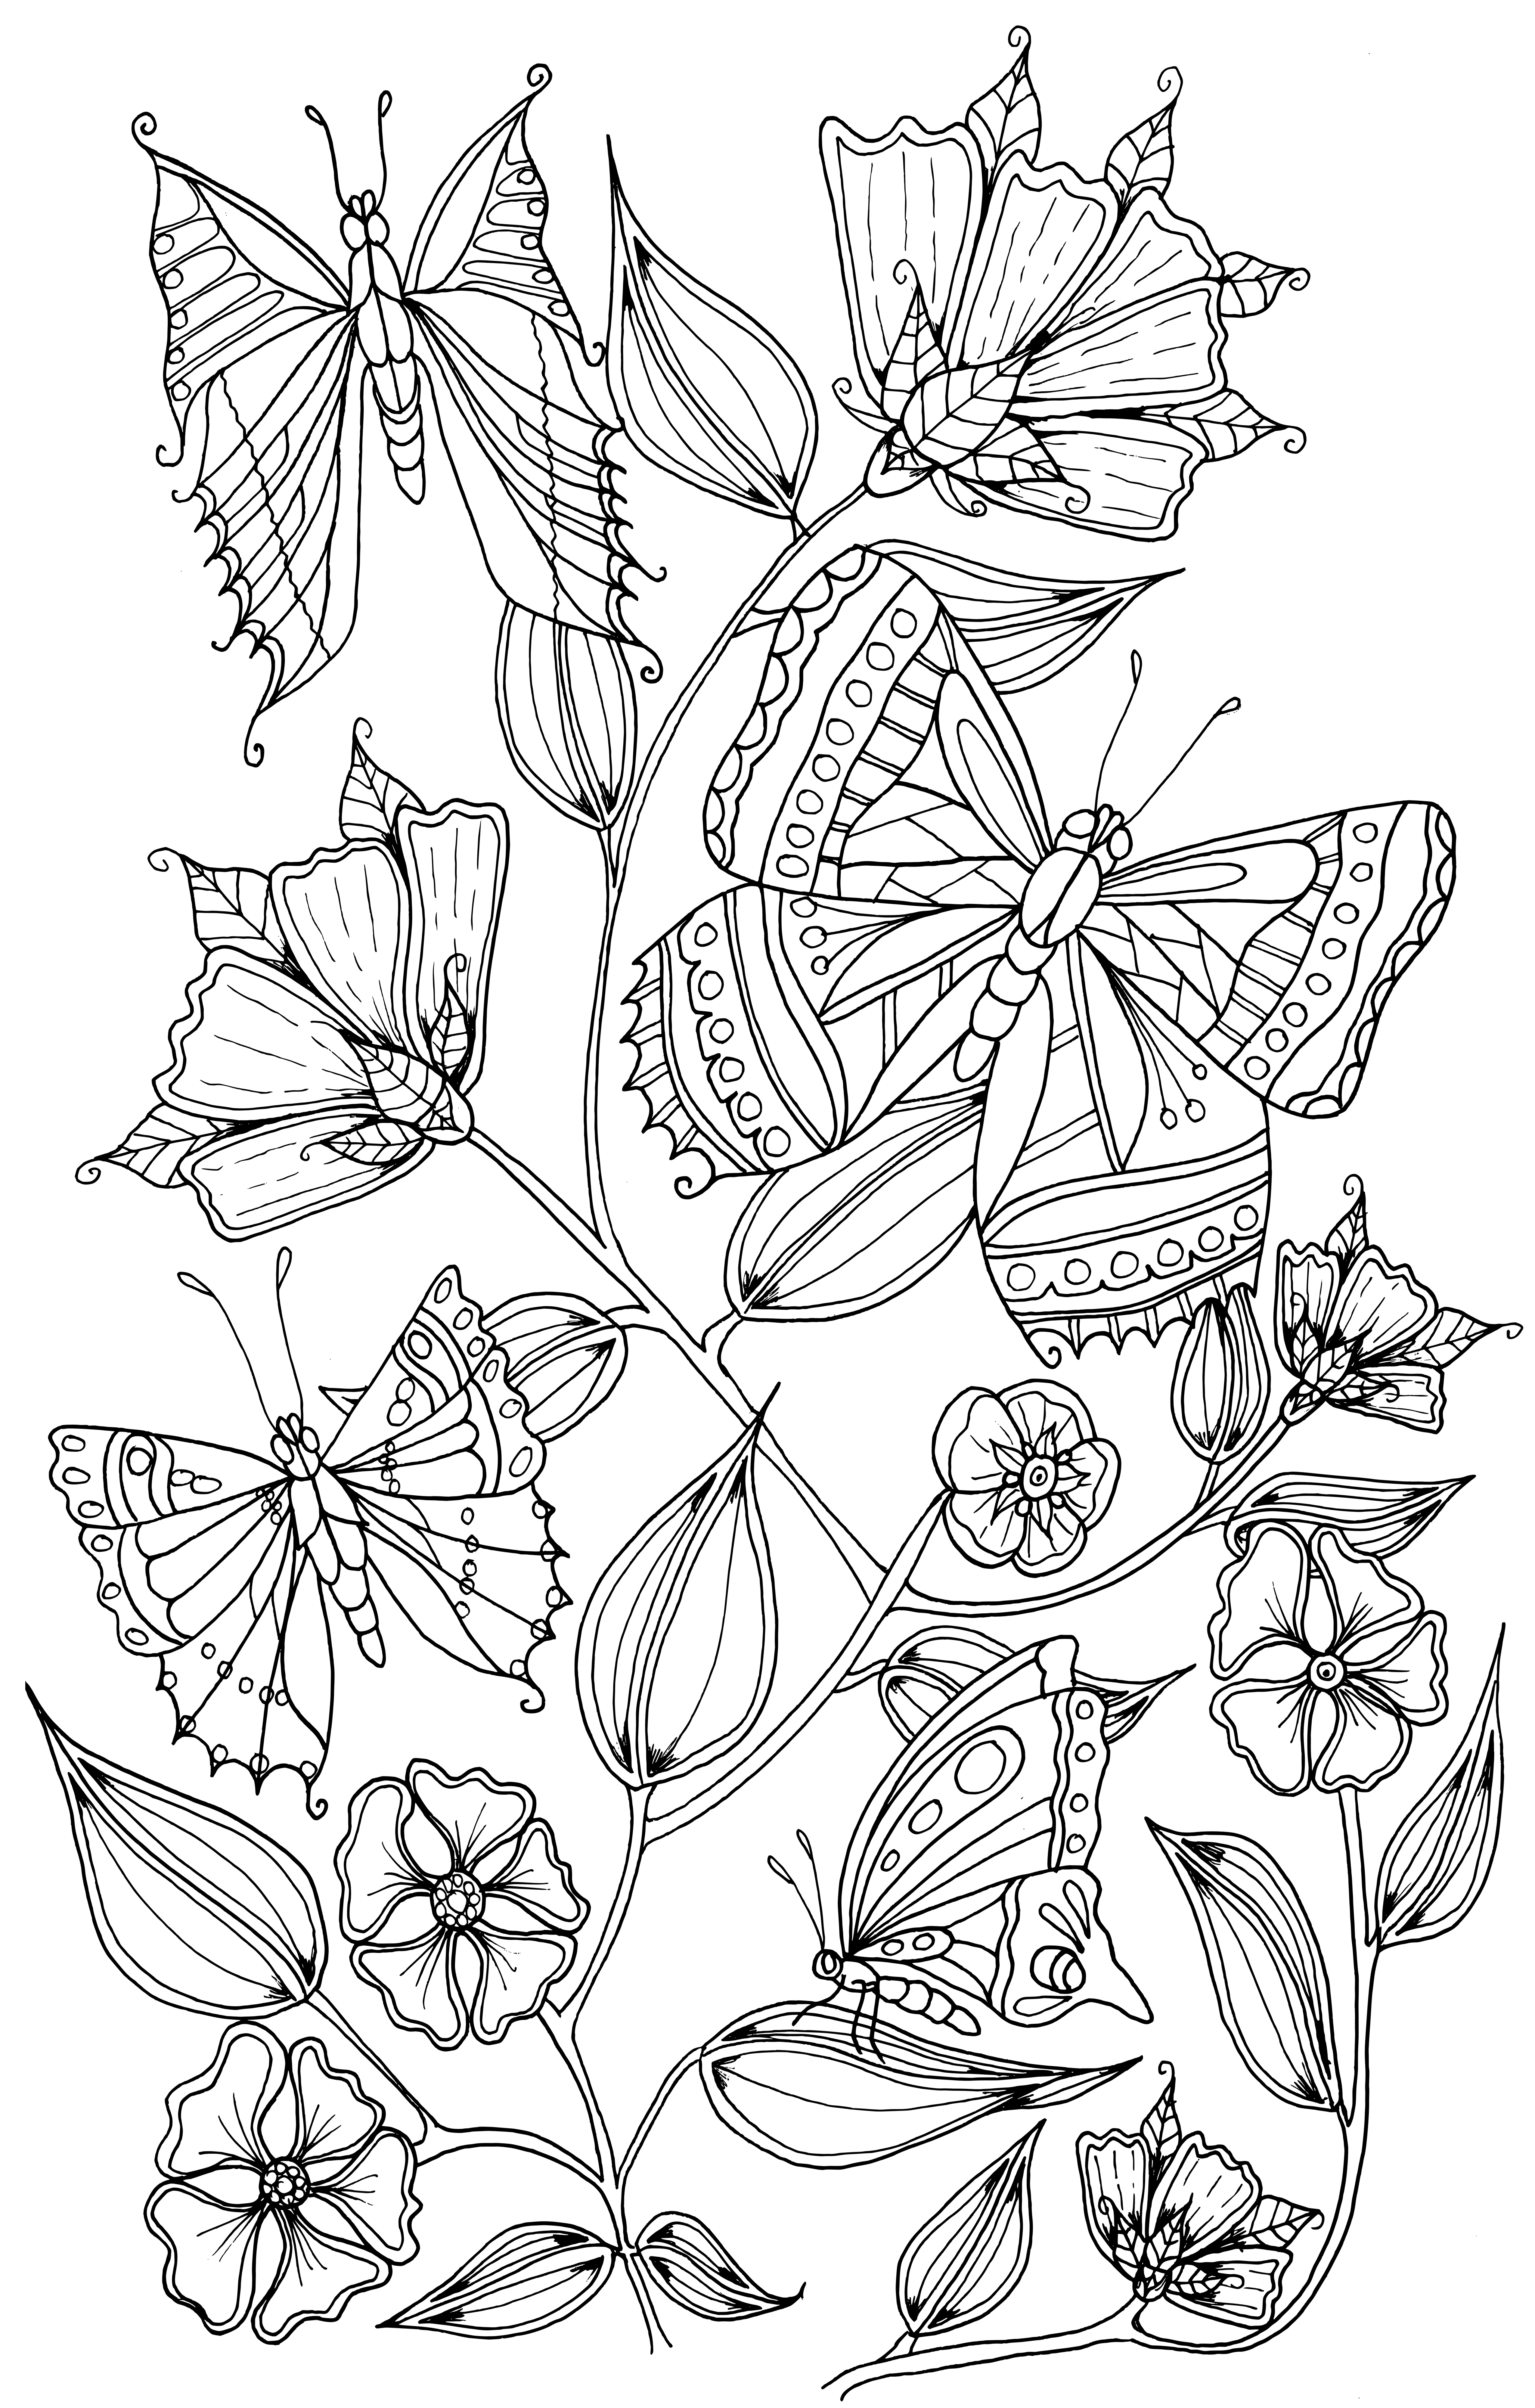 coloring pages of butterflies and flowers free coloring pages of butterflies and flowers download pages flowers coloring of and butterflies